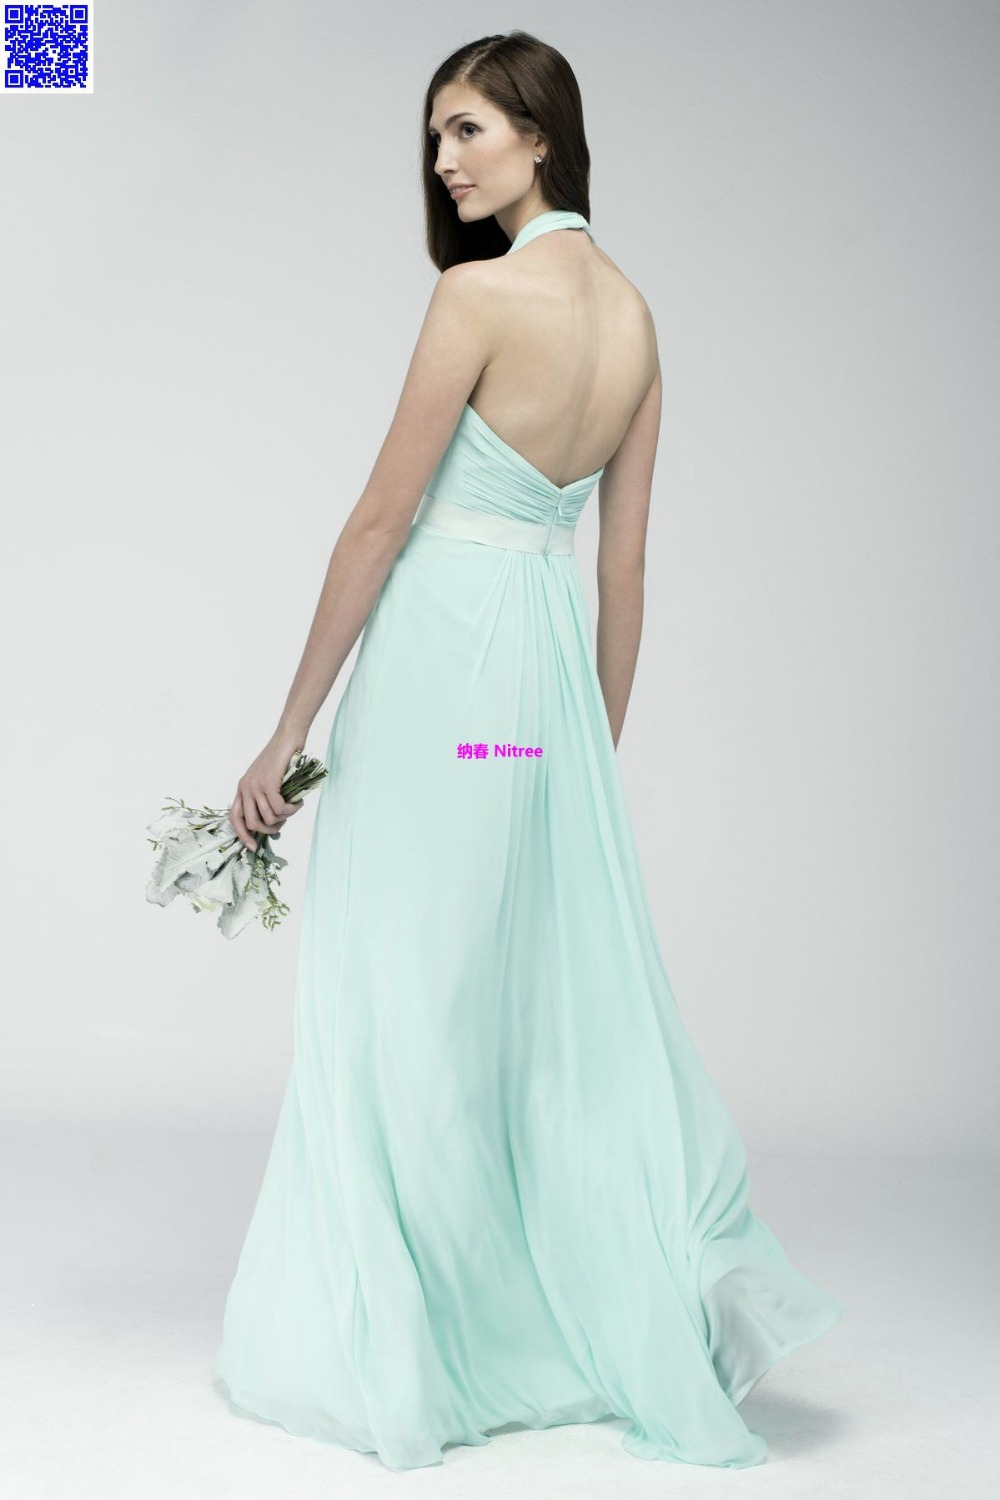 Nitree Cheap Green Bridesmaid dress Party Gown Fashion Collection Unique  Sexy Luxury Designer Celebrity Romantic Spring 2015 New-in Bridesmaid  Dresses from ... 6027b4581cec